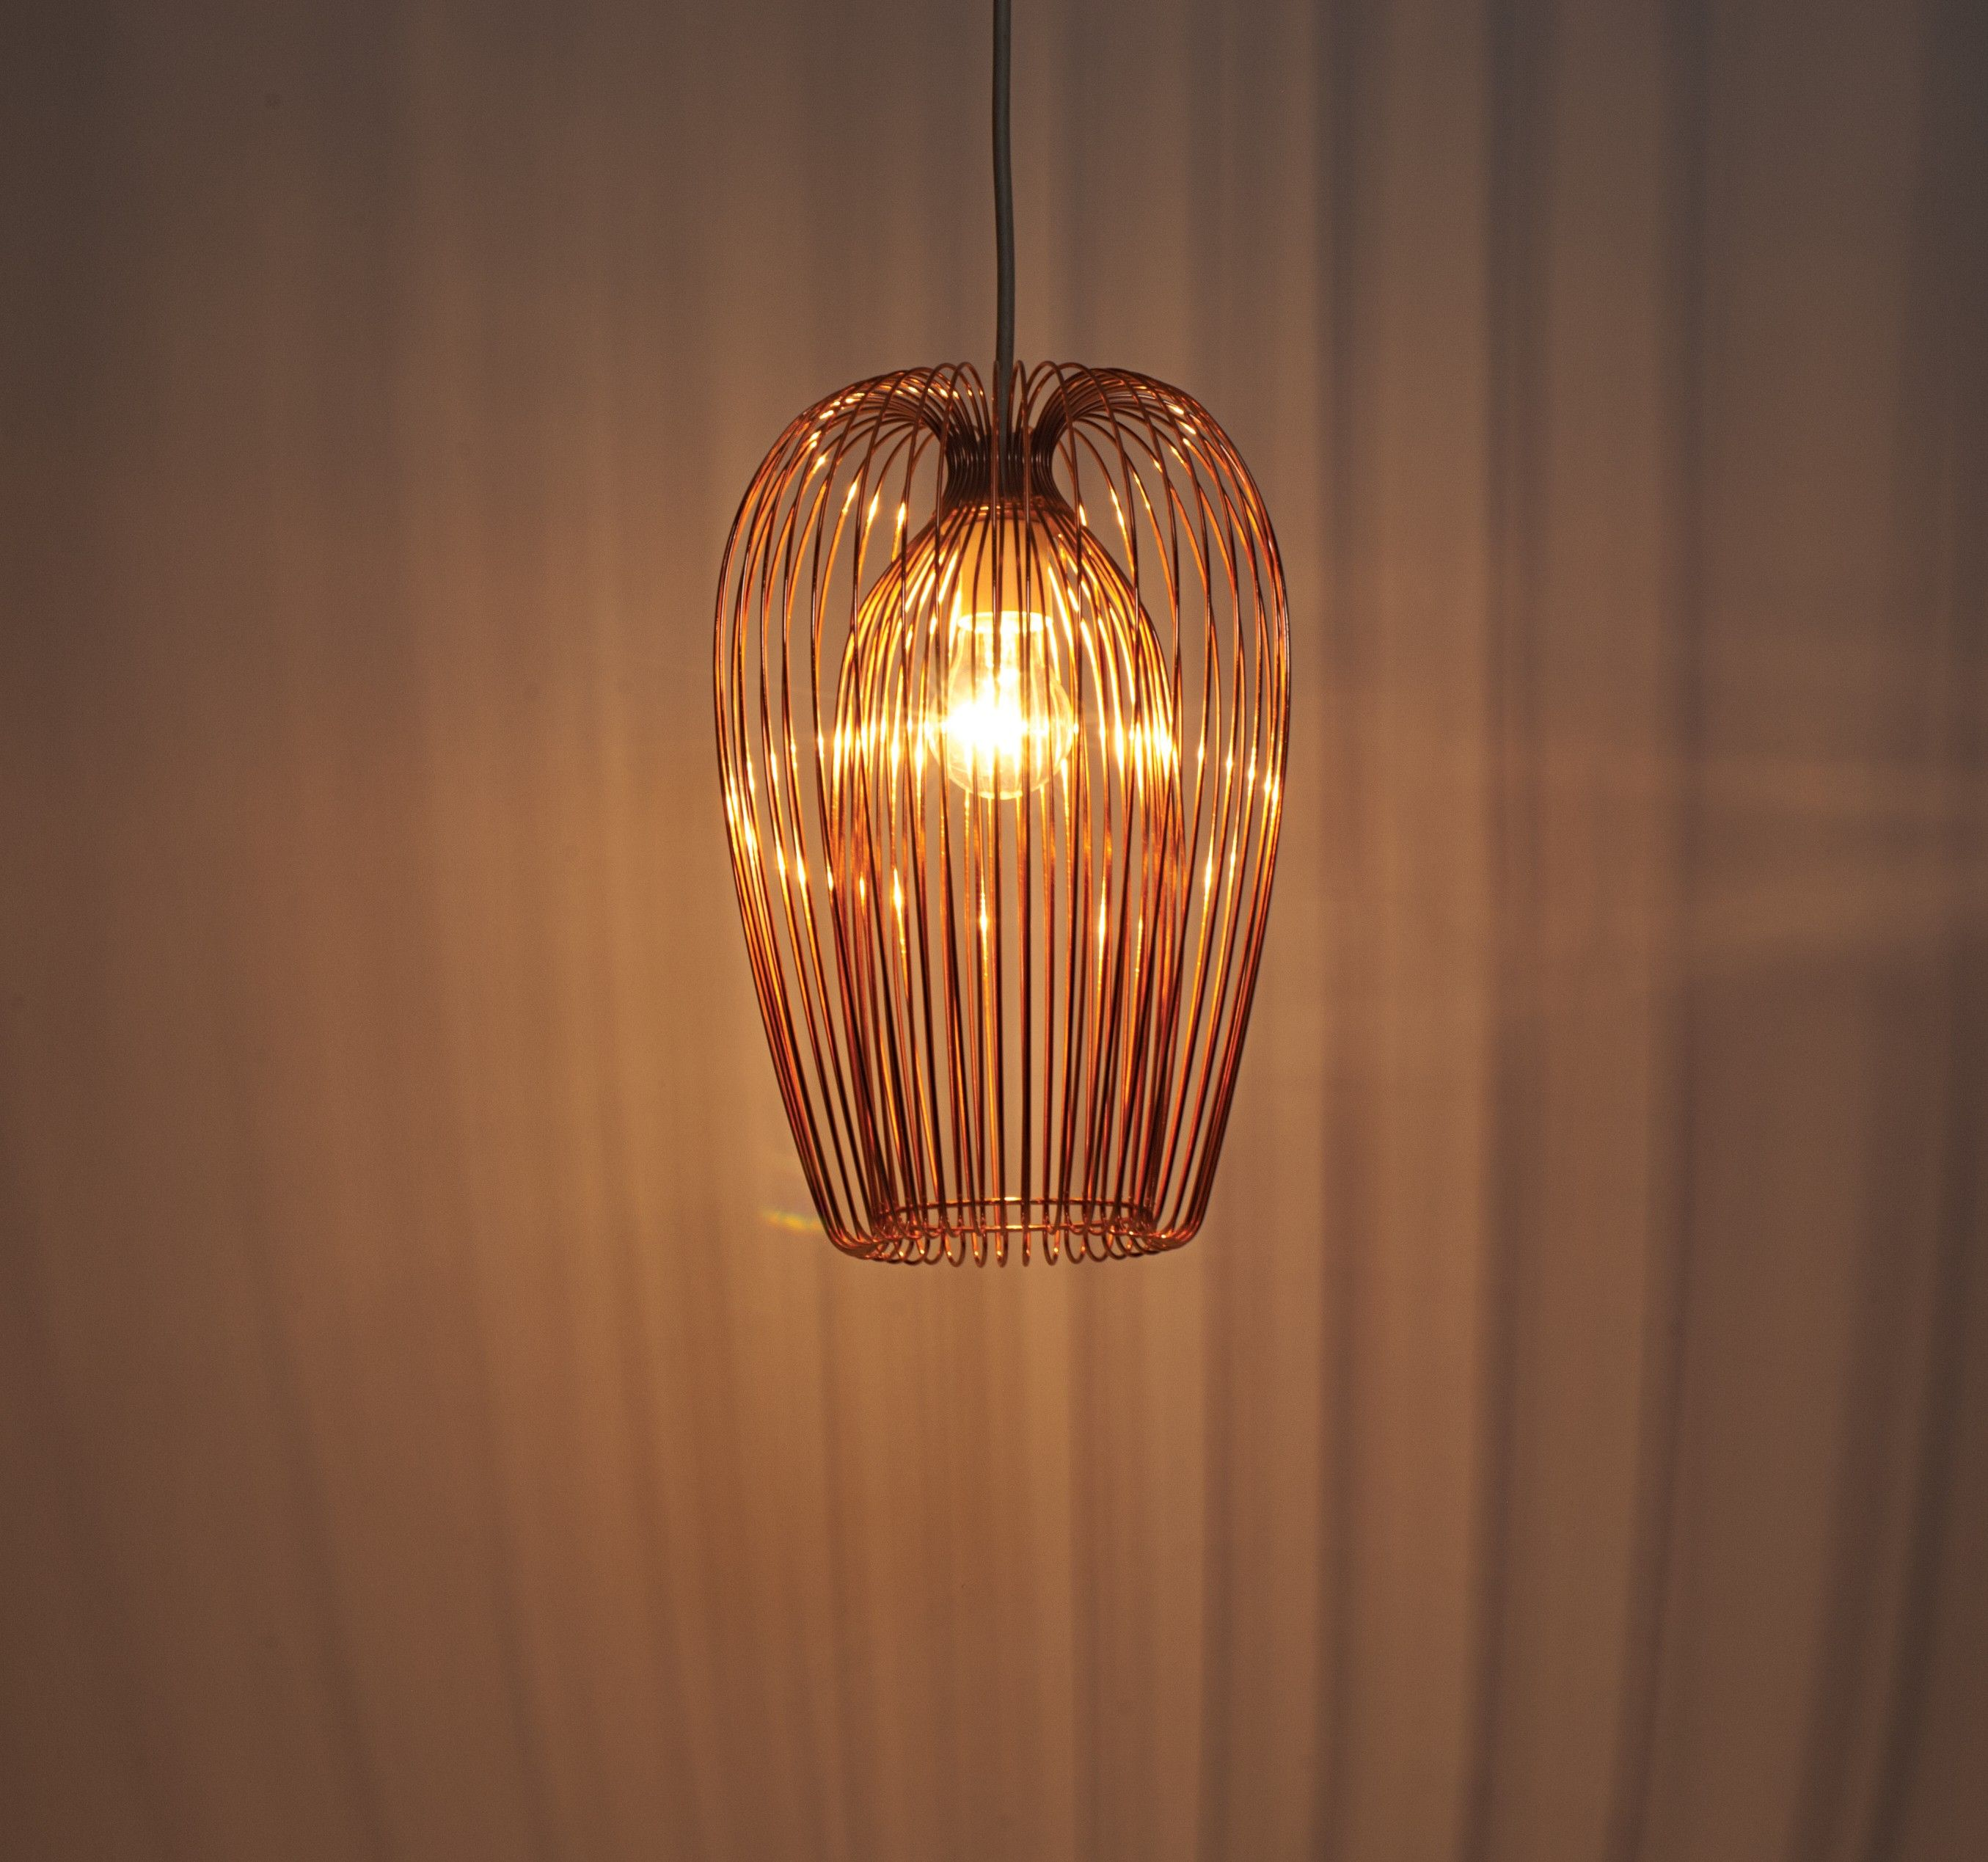 Hanging Pendant Light With Copper Wire Shade Hanging Ceiling